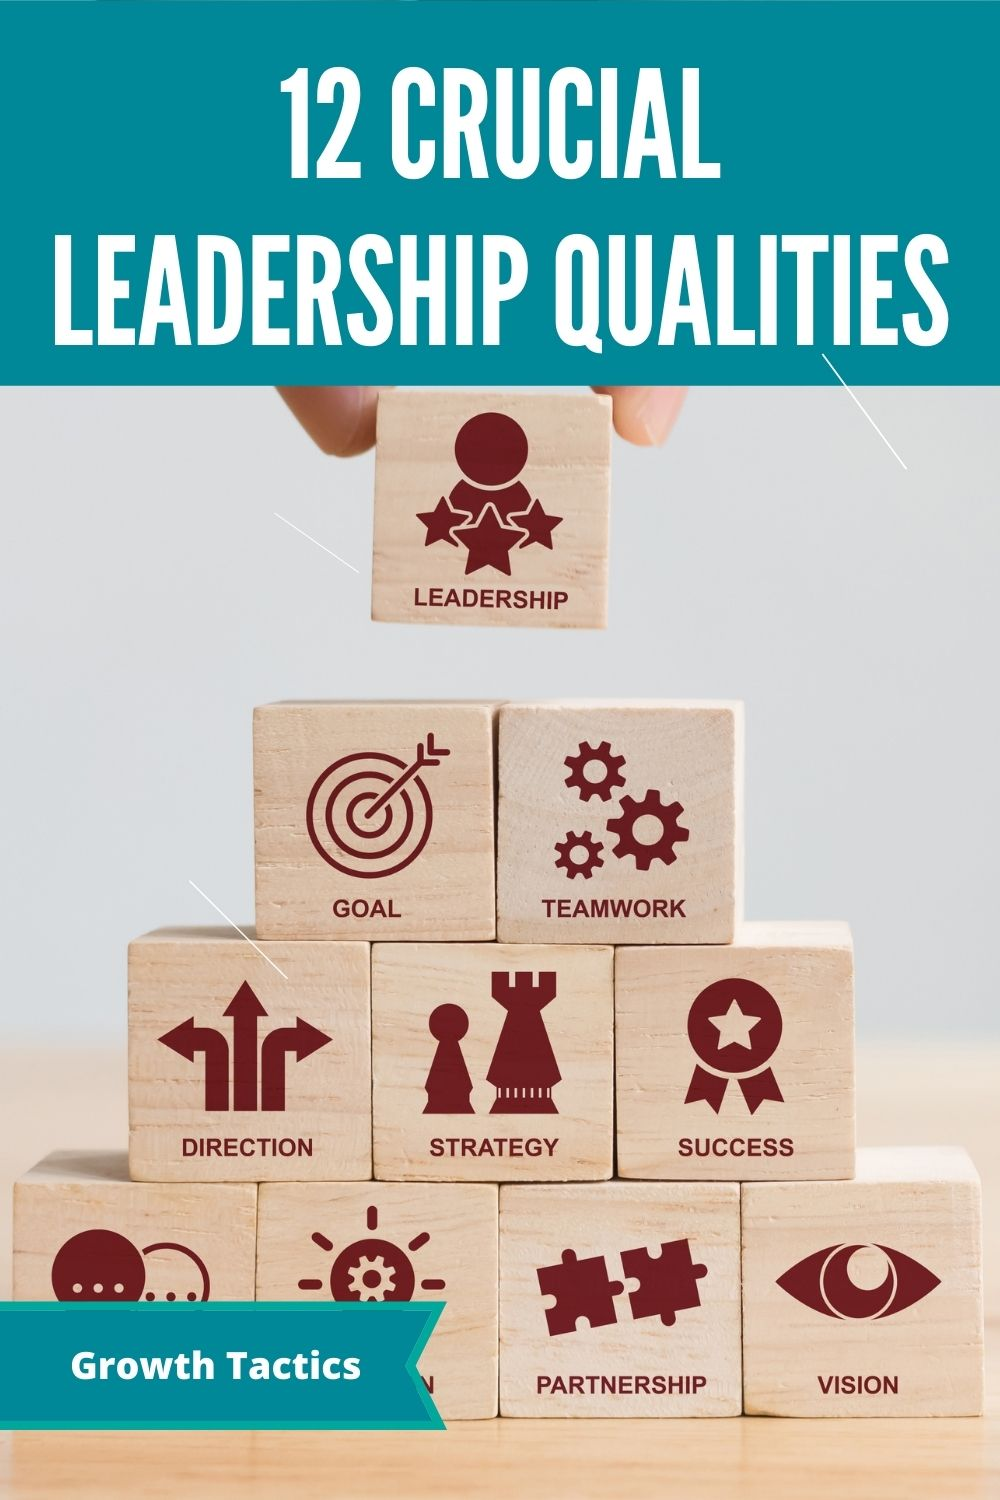 12 Leadership Qualities That Will Make You An Outstanding Leader